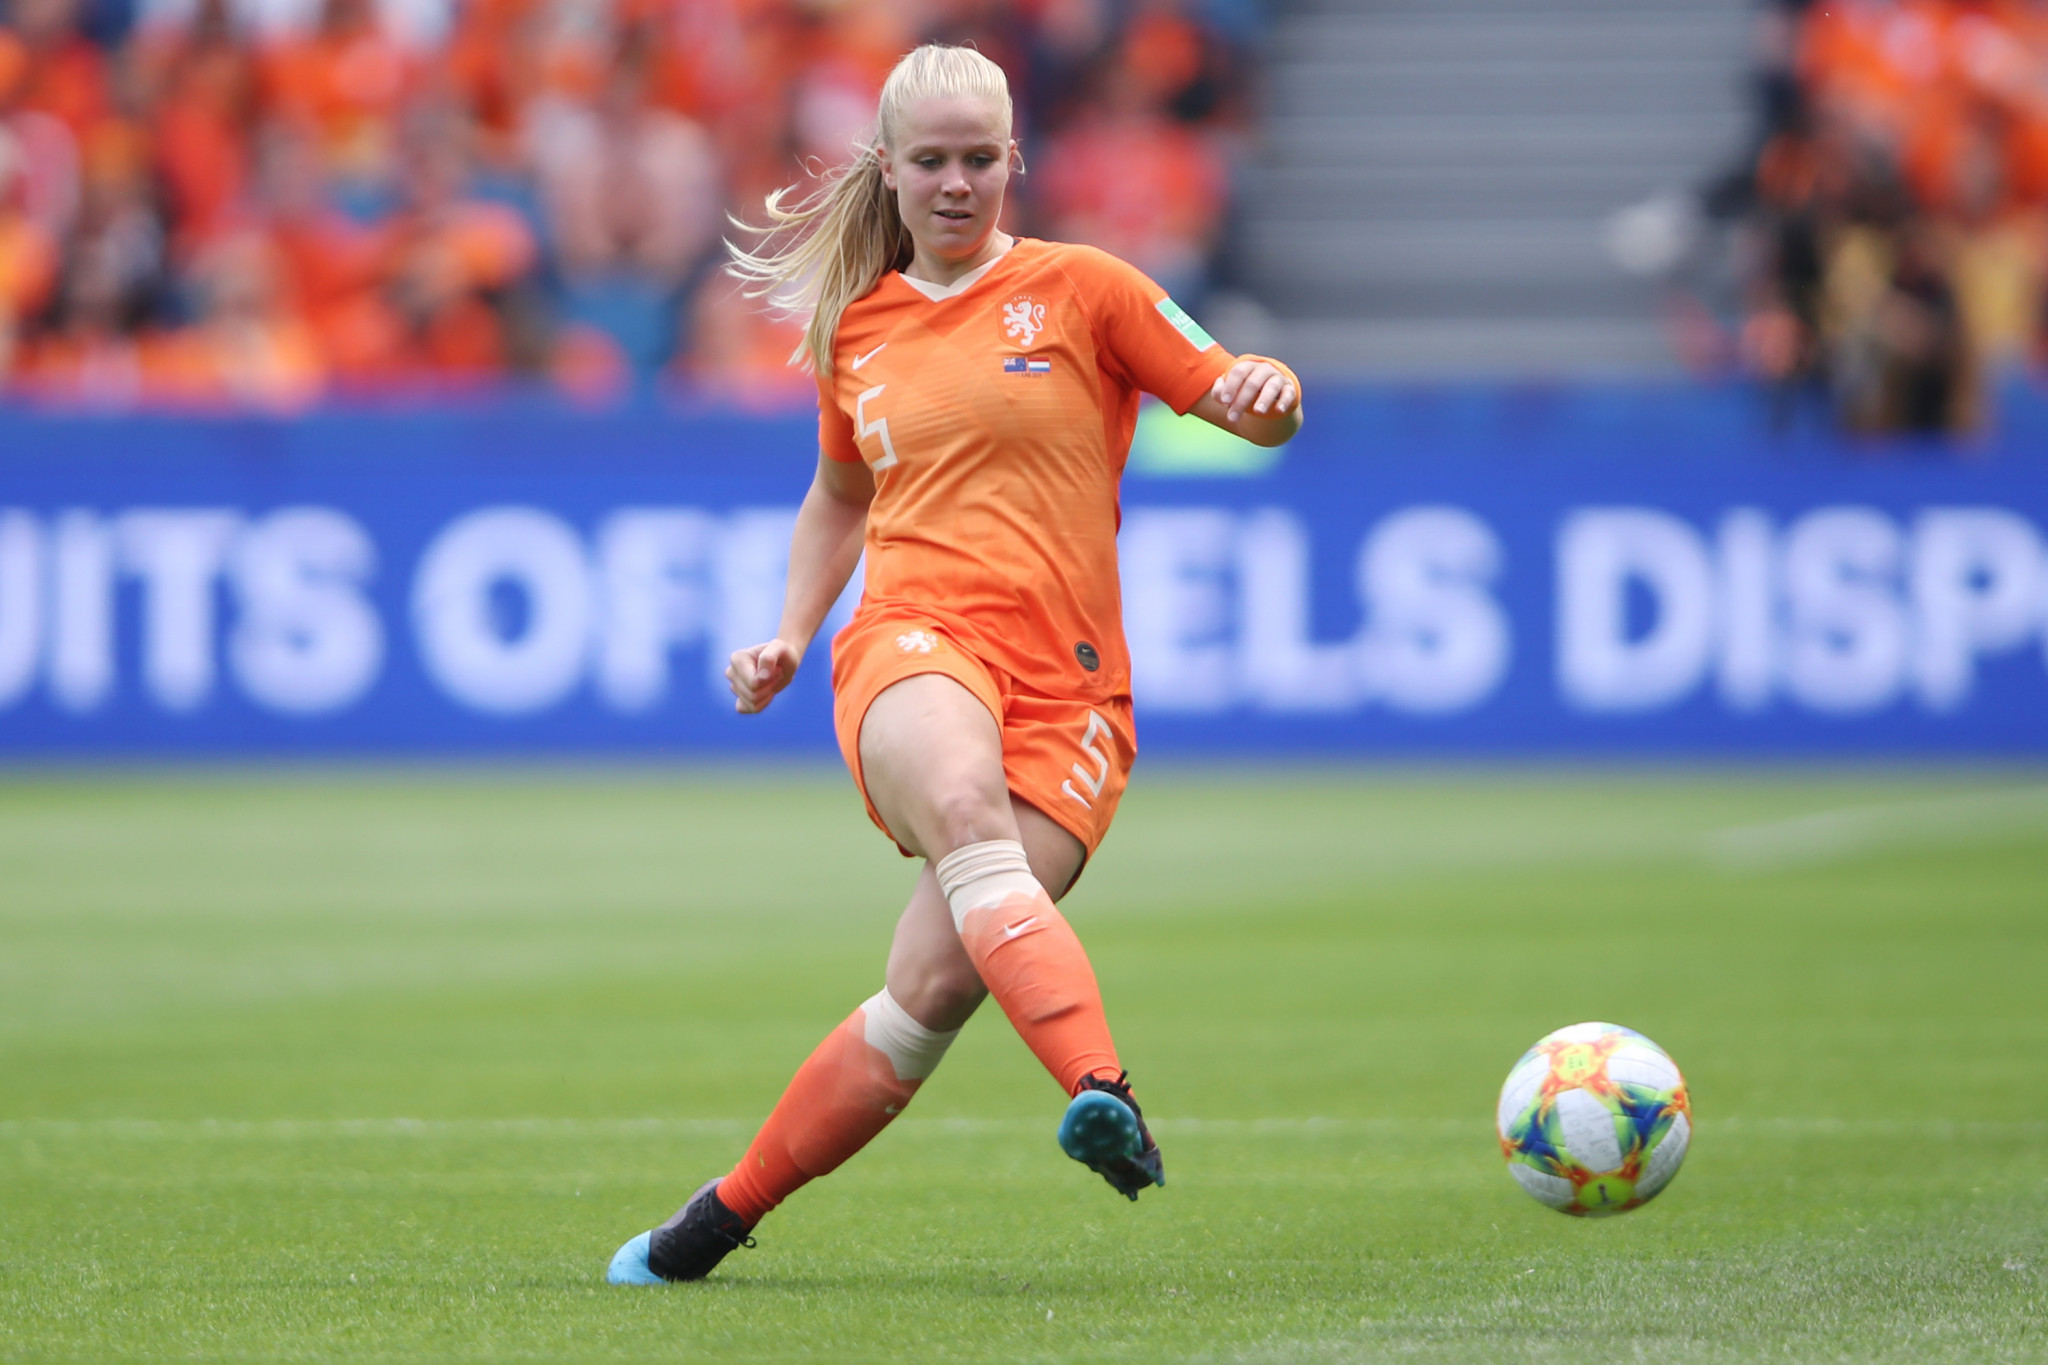 European champions The Netherlands faced a tough battle against New Zealand in their first match of the tournament ©Getty Images